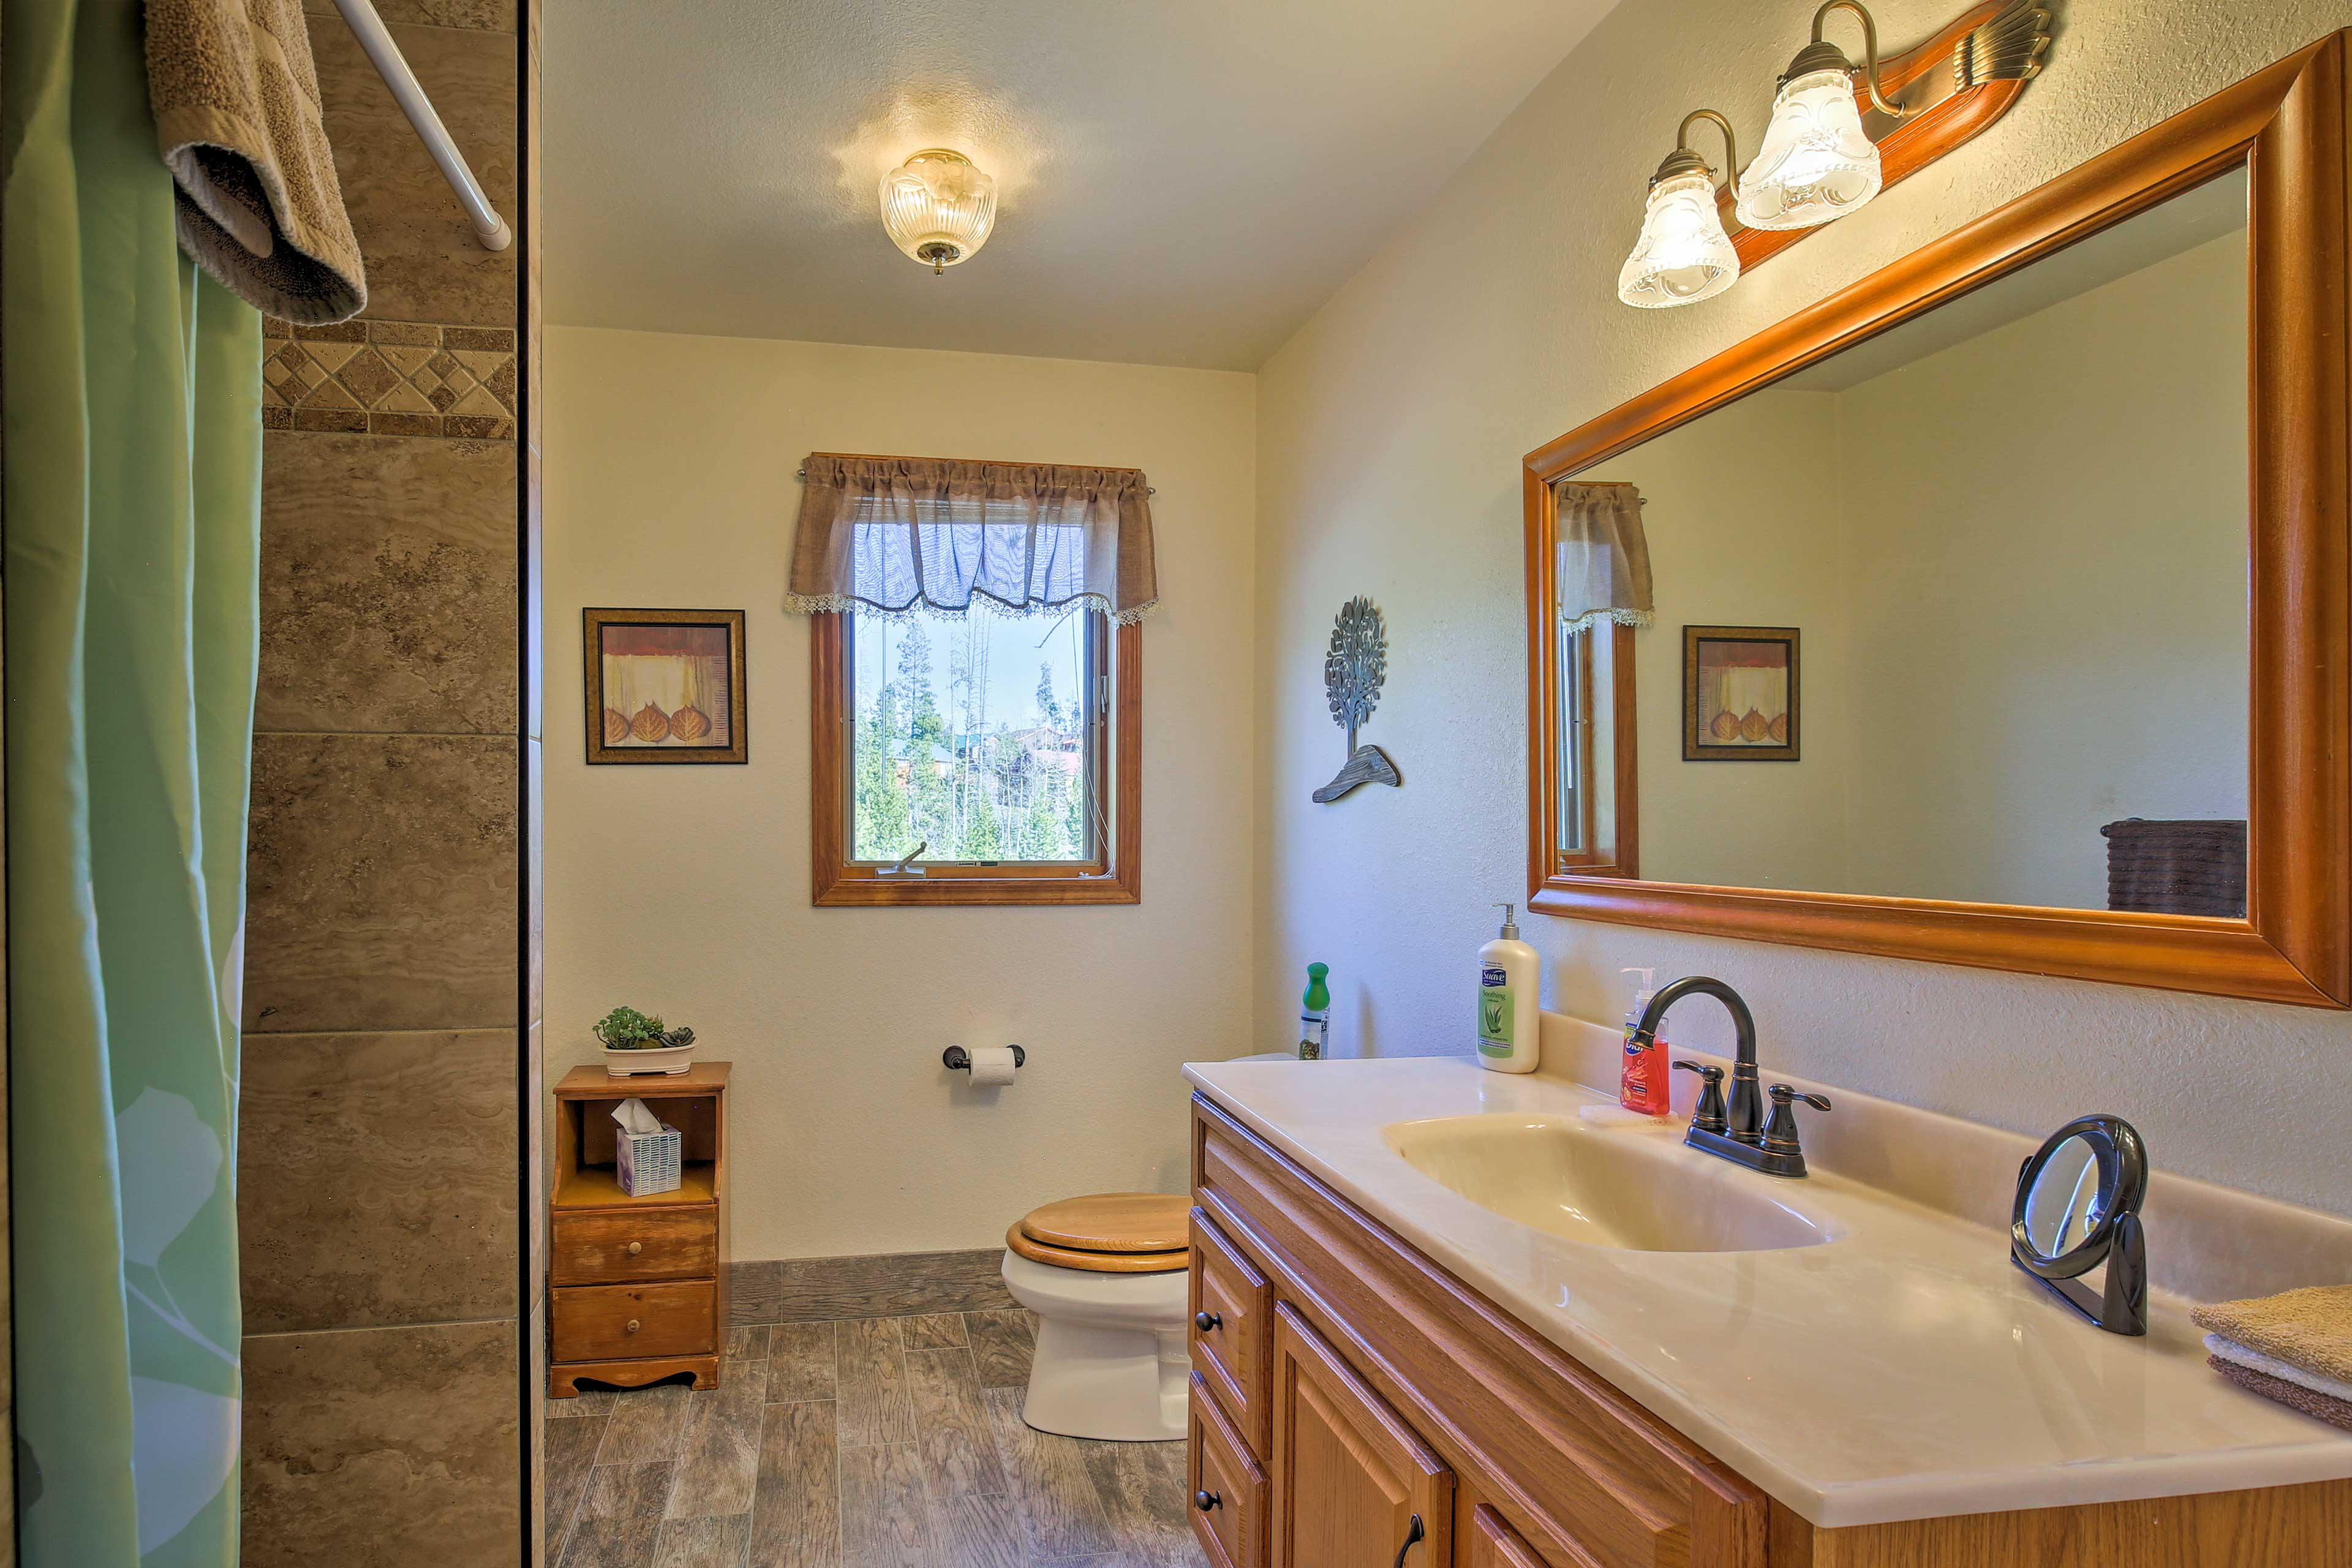 The 3 bathrooms provide adequate space for everyone to get ready each morning.